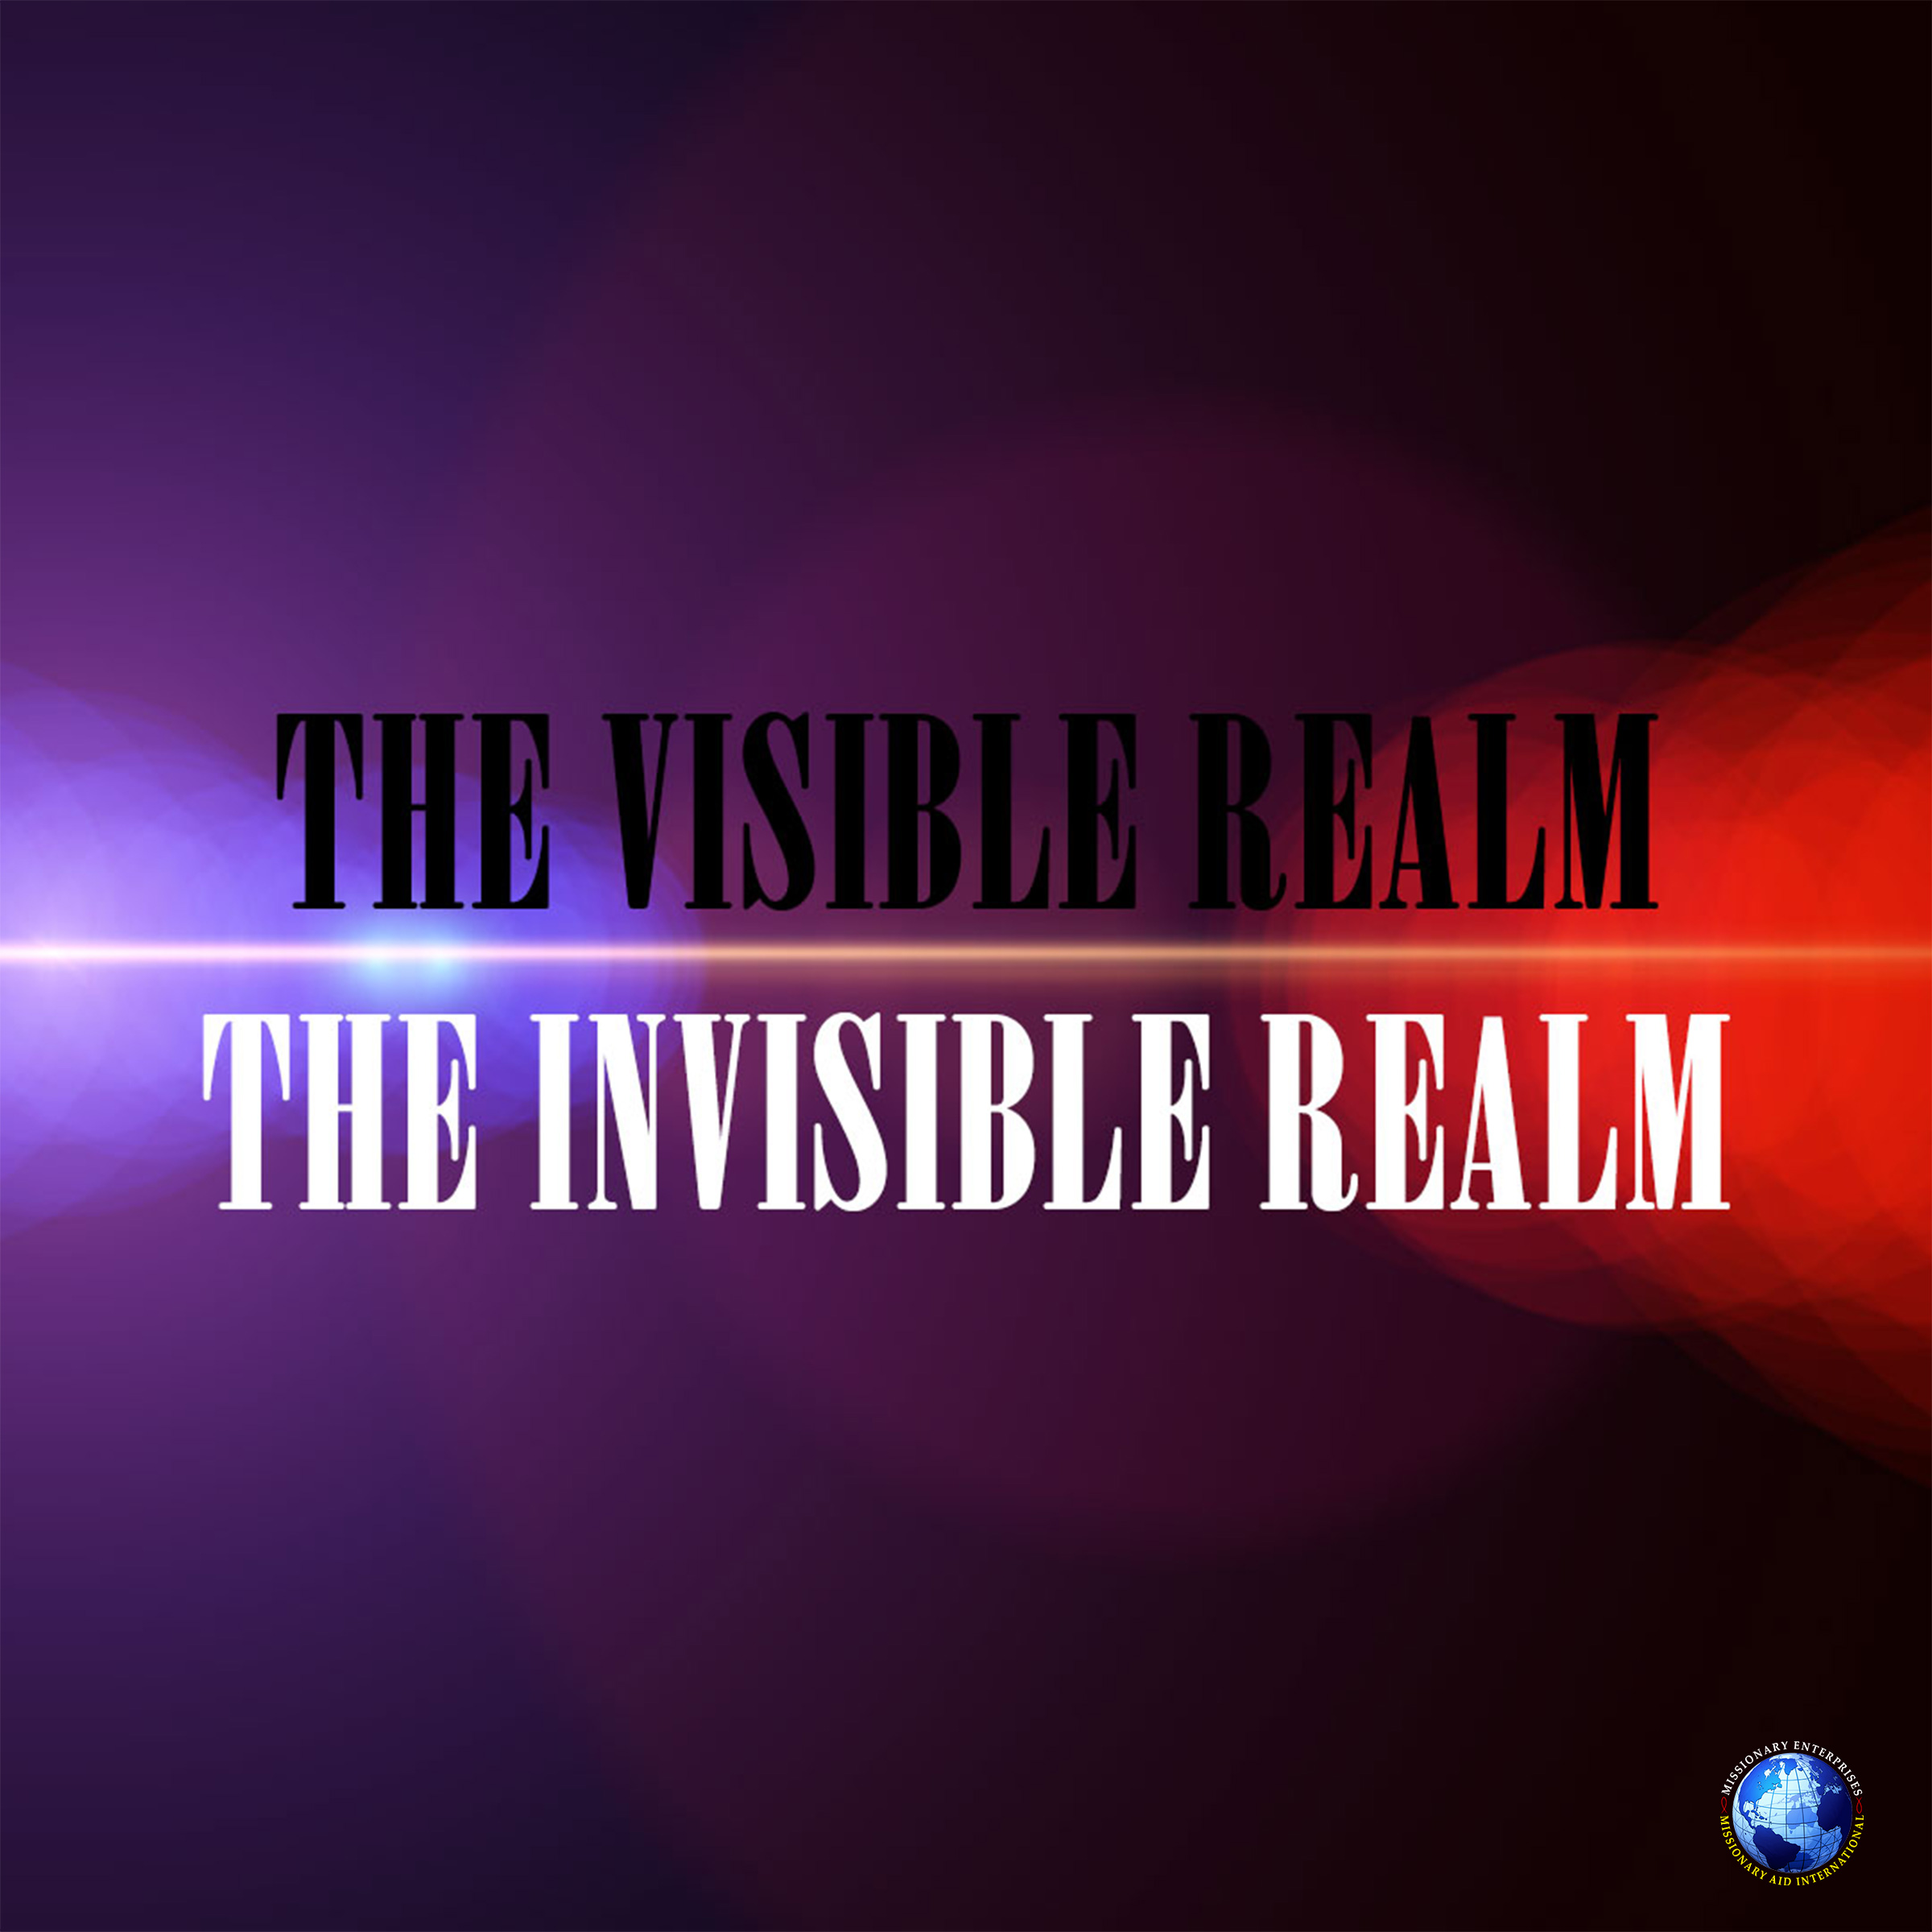 The Visible Realm – The Invisible Realm